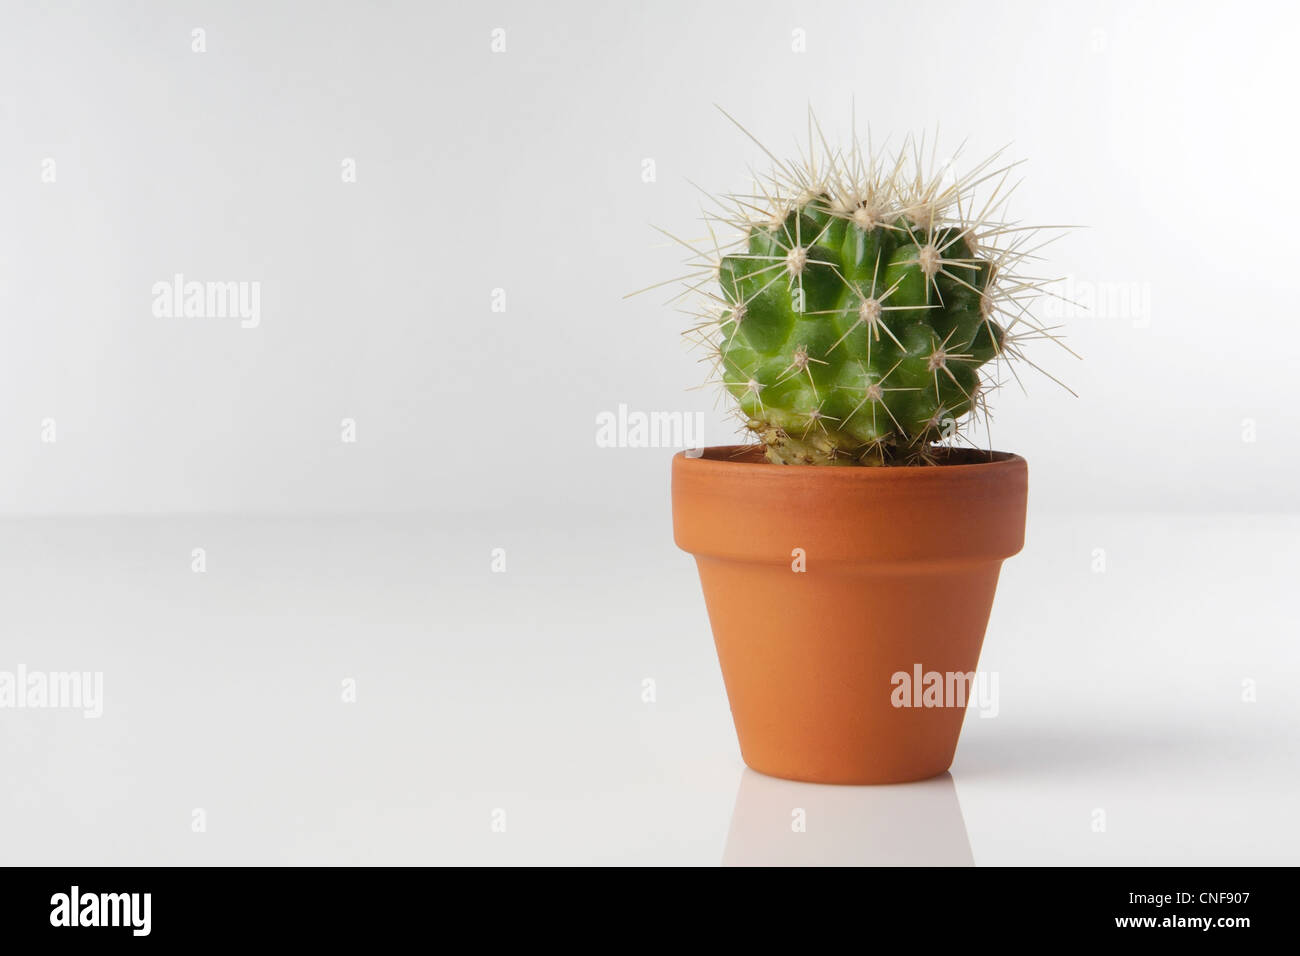 Cactus Planting Pots Cactus Plant Pot Stock Photos Cactus Plant Pot Stock Images Alamy